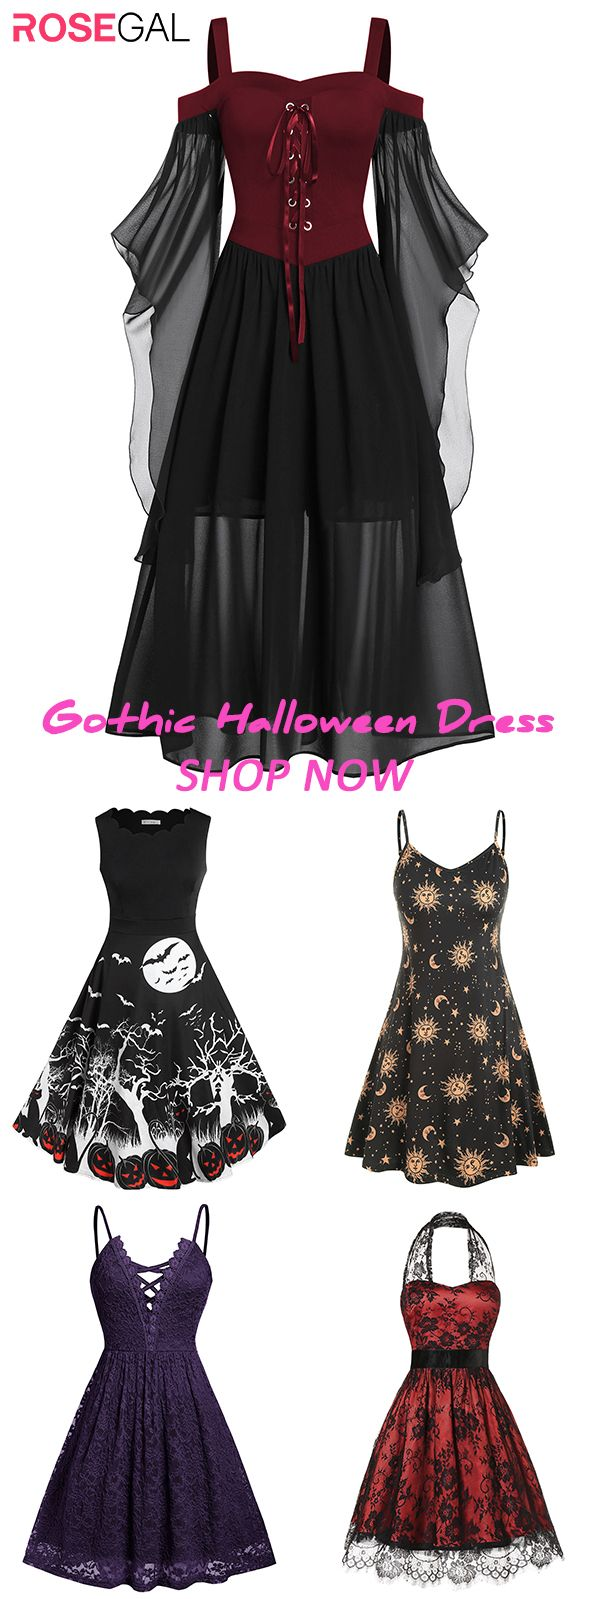 Photo of Rosegal plus size Lace Up Gothic Halloween Dress Gothic dress ideas